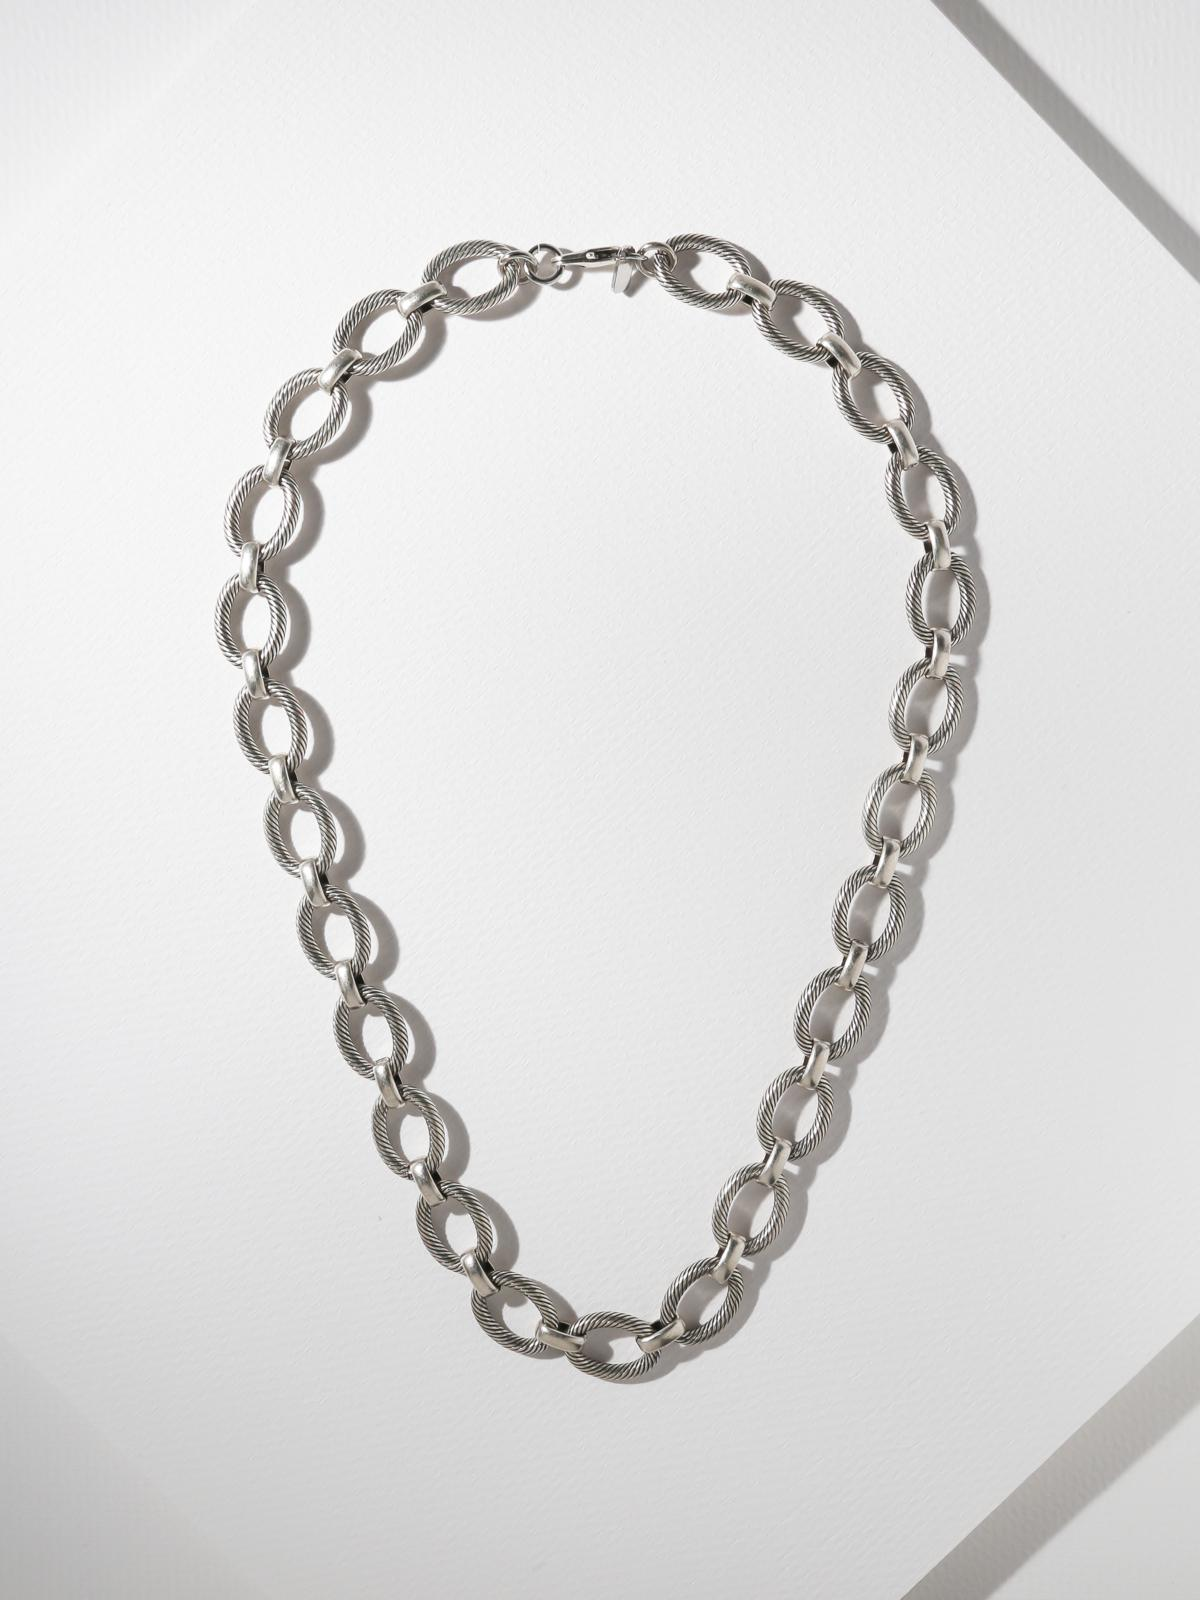 The Ultramodern Chain Silver